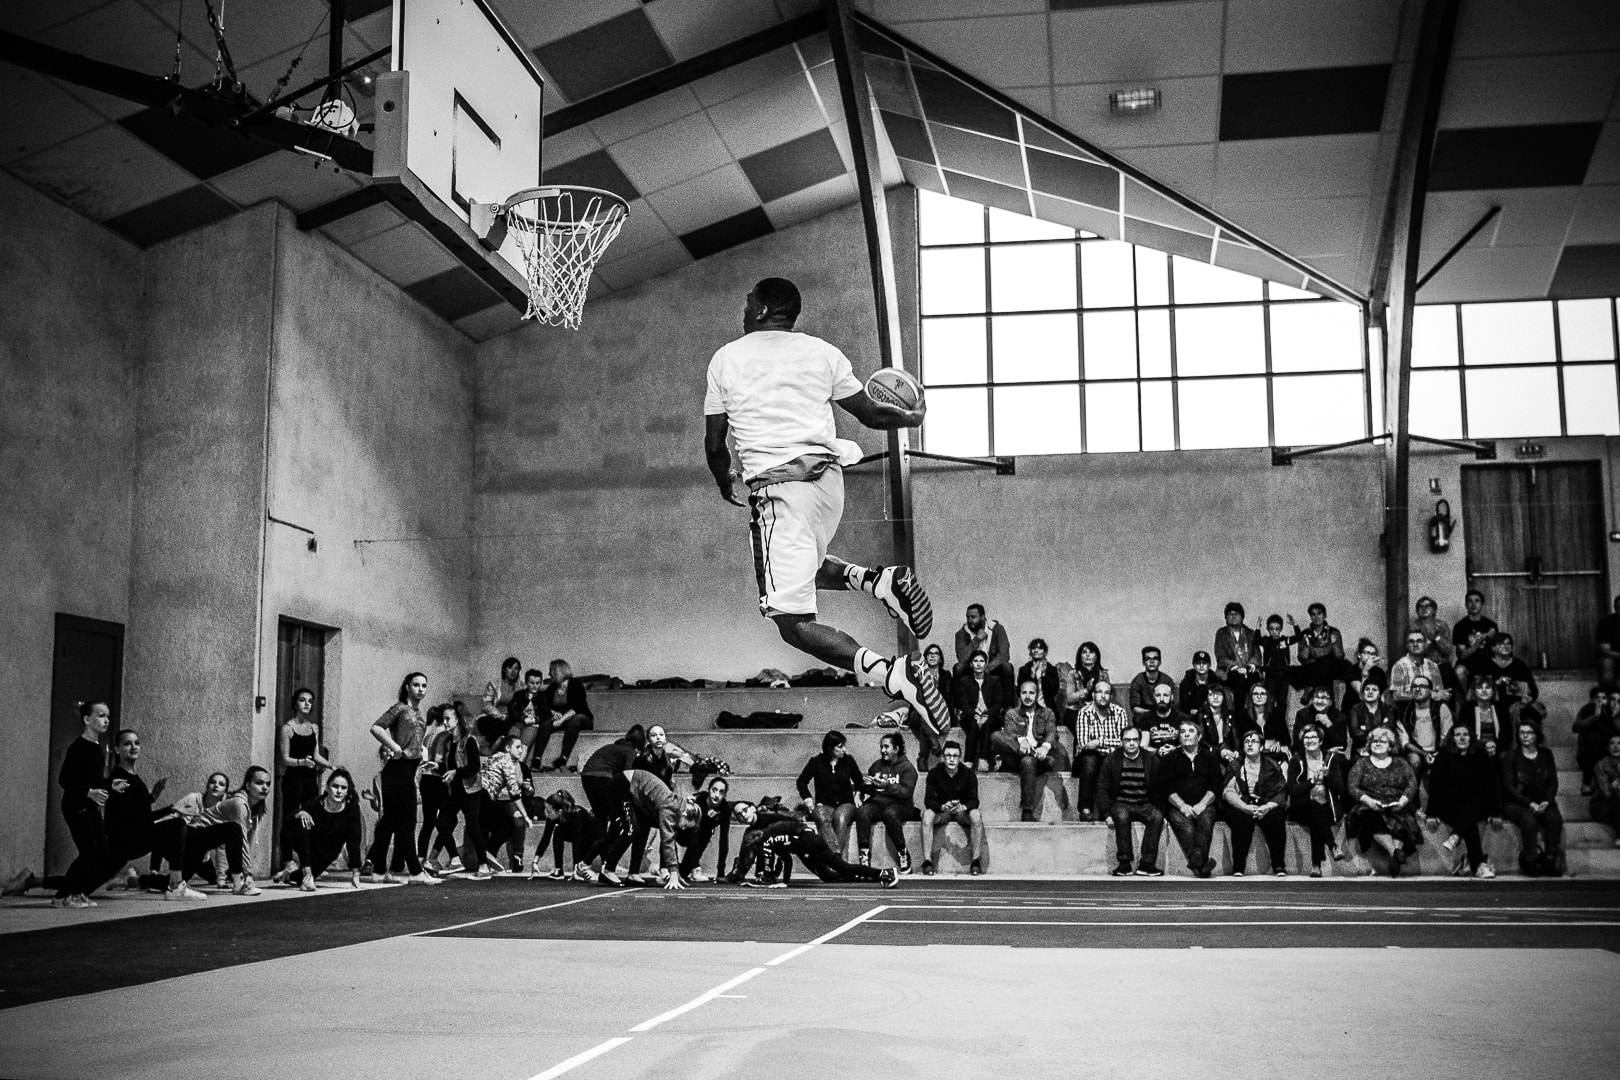 trezors-photography-photographe-professionnel-toulouse-31-sport-lifestyle-basketball